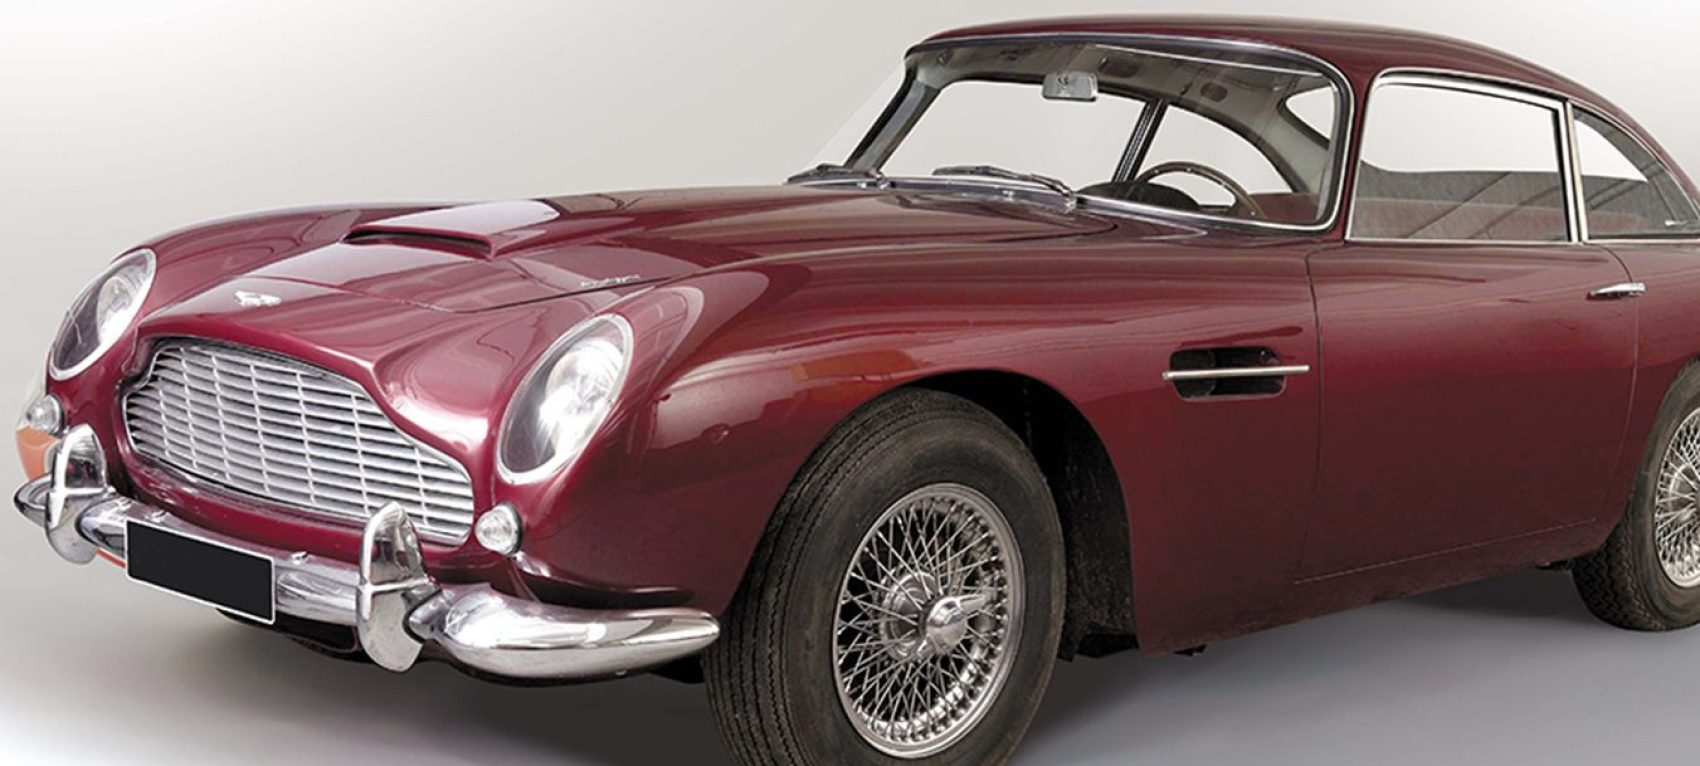 Iconic 64 Aston Martin Db5 Set For The Auction Block In Paris Insidehook